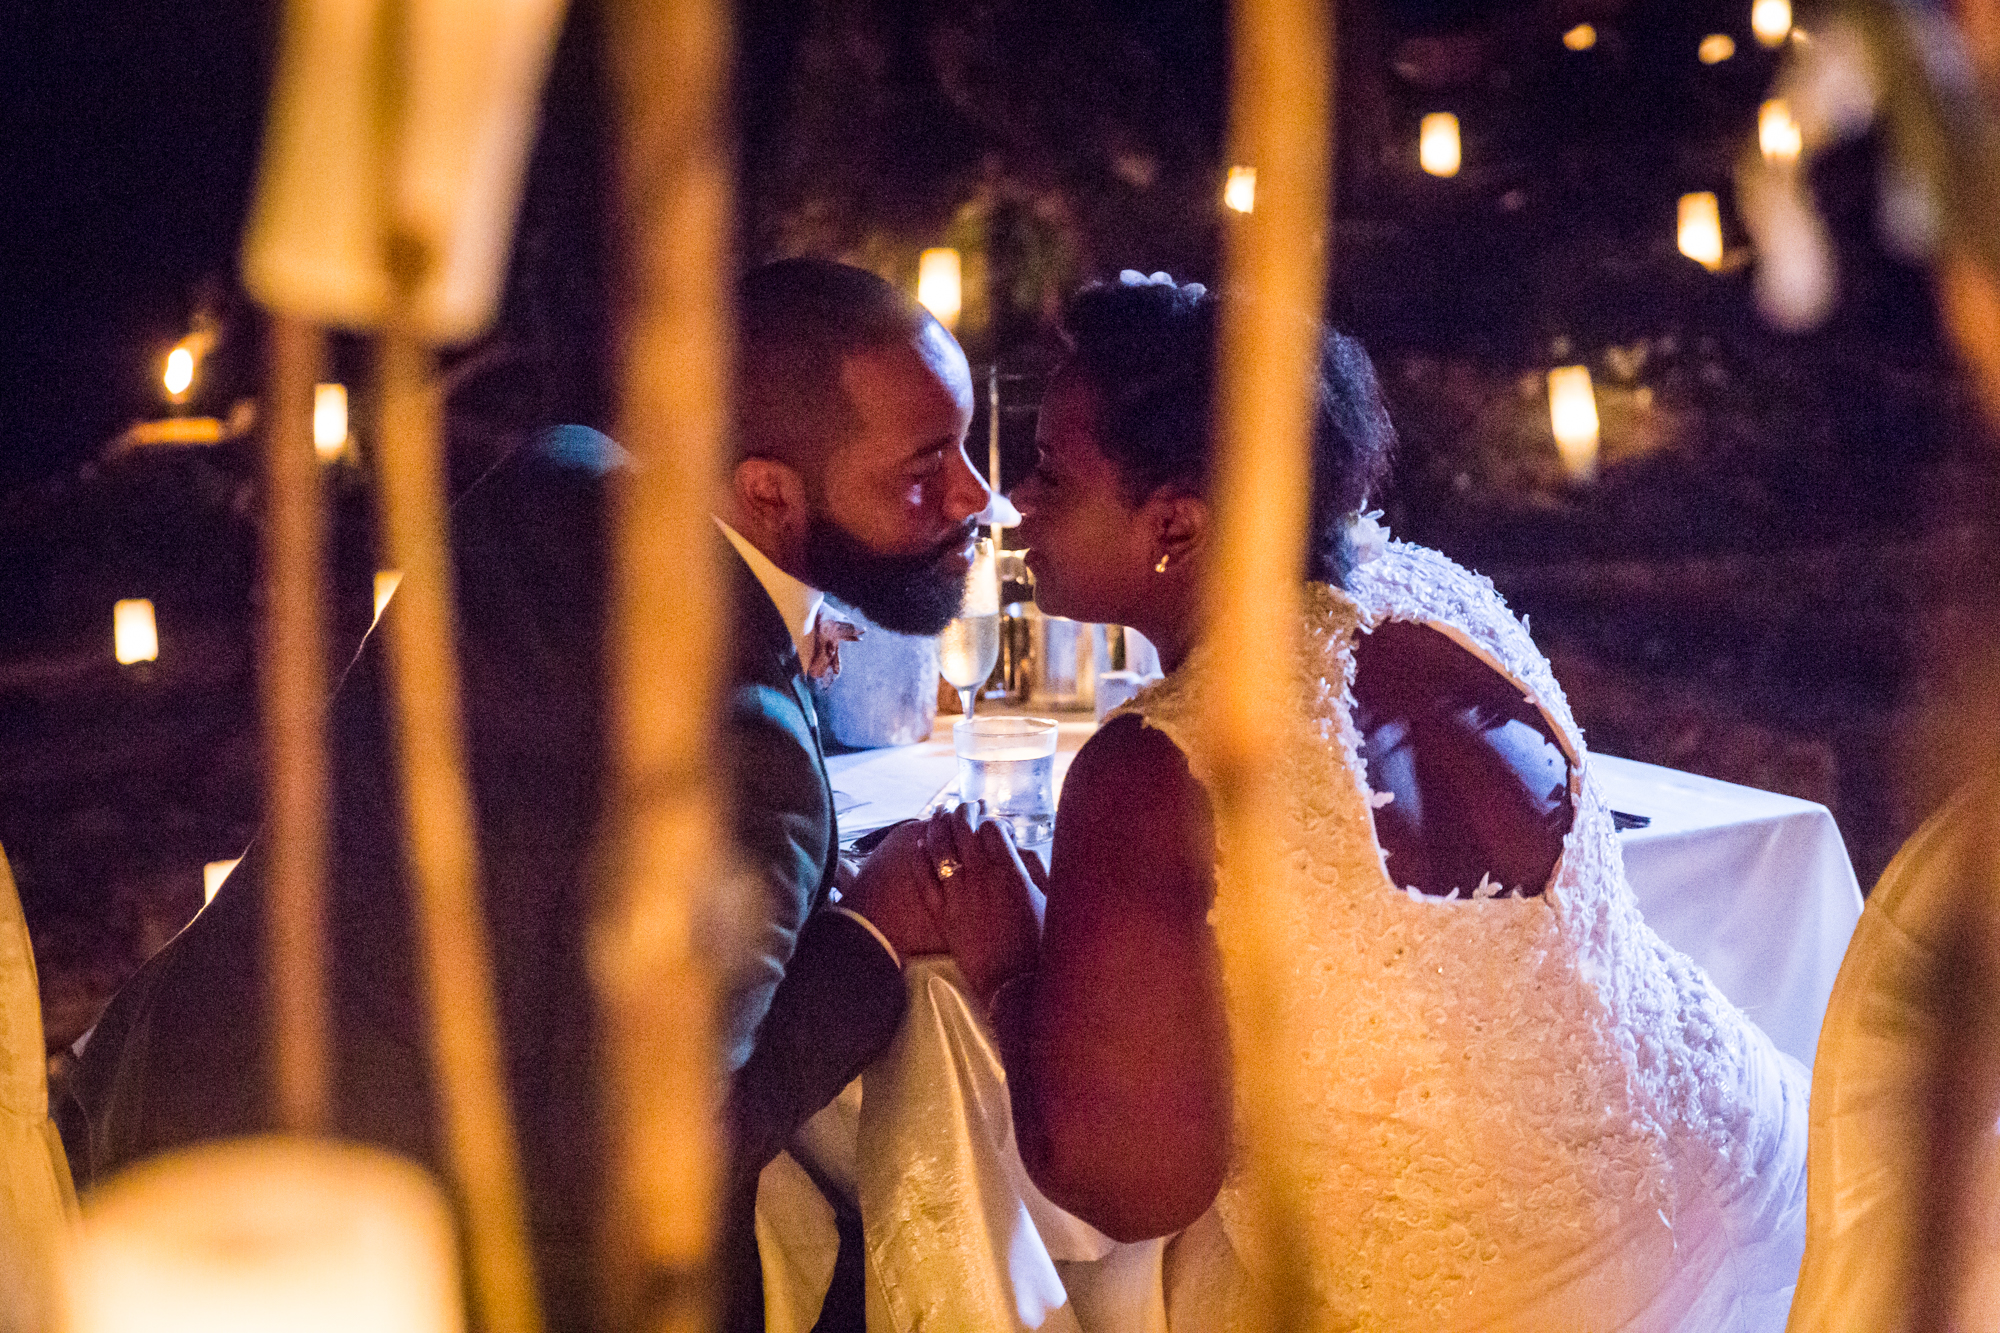 Bride and groom kissing by candlelight for an article on destination wedding planning tips